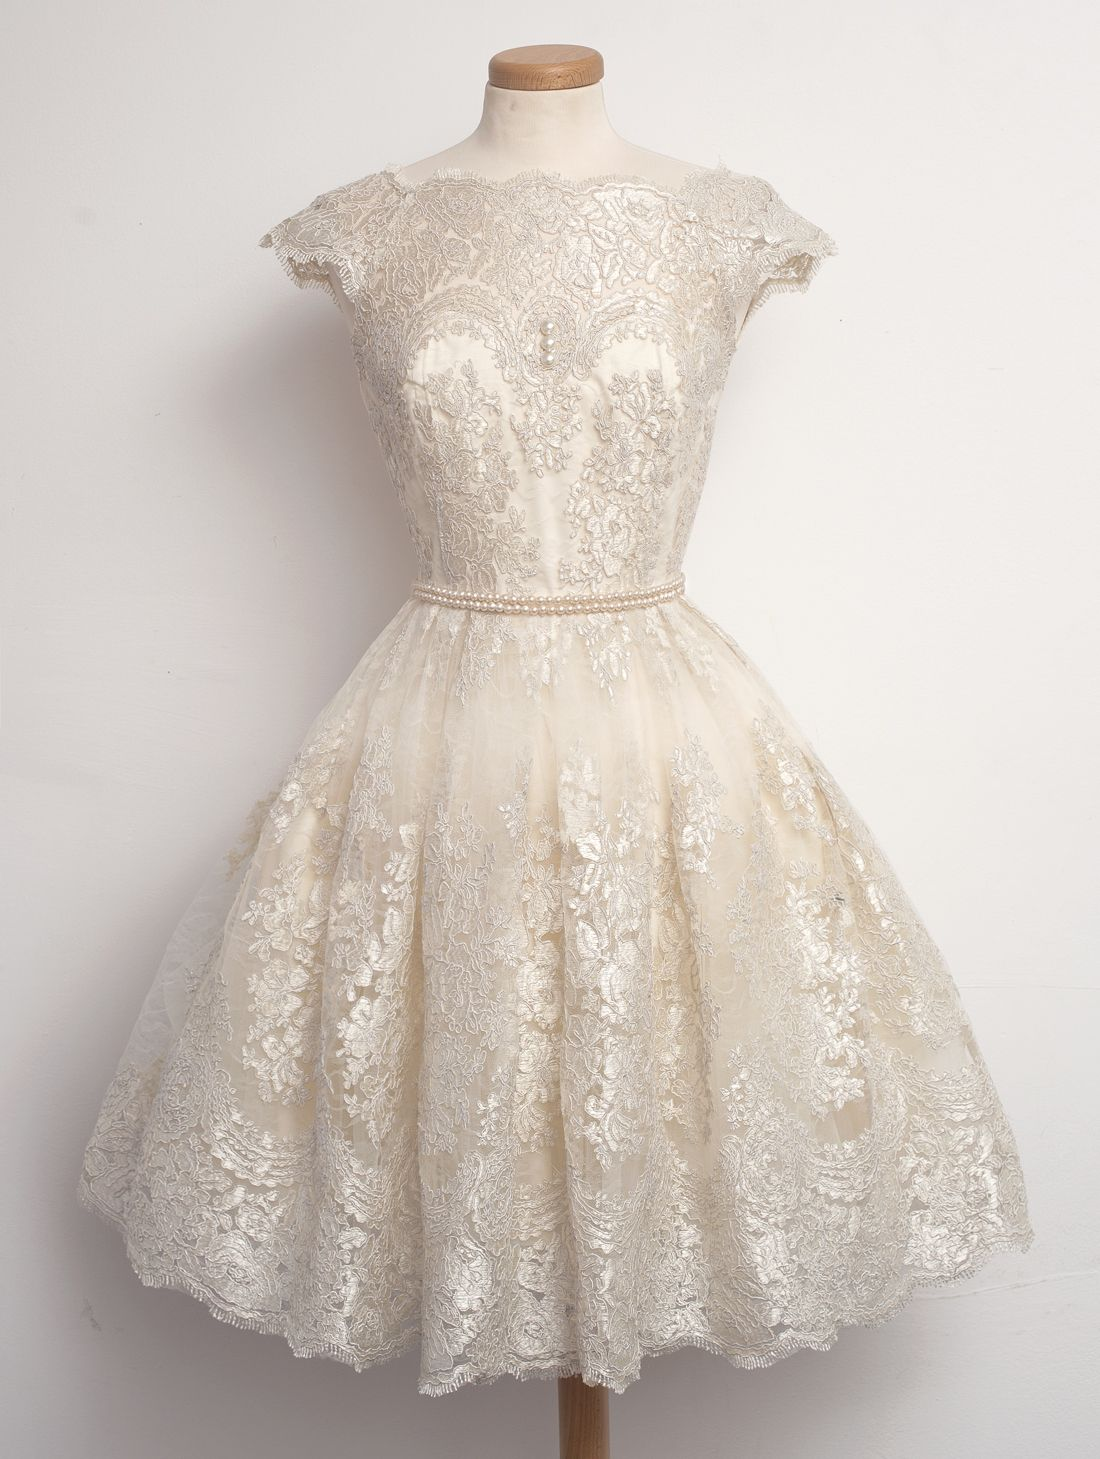 This dress is perfection. Dress by www.chotronette.com | Clothes ...